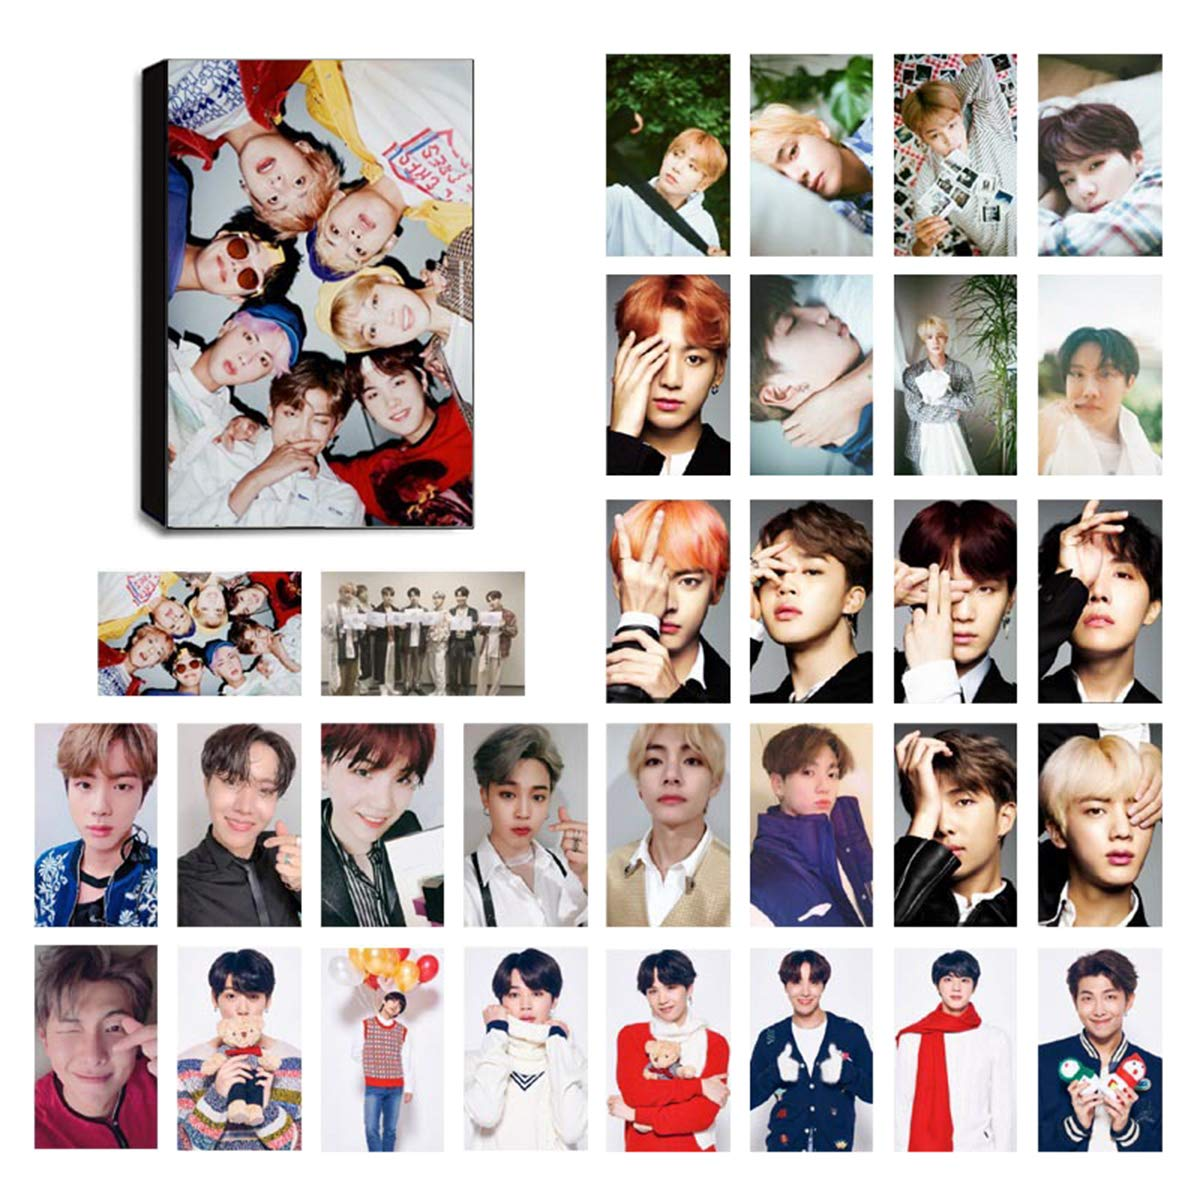 Calendars, Planners & Cards 1 Pc Hot Kpop Bts Bangtan Boys Love Yourself Album Photo Photocards Postcards Poster Greeting Card Business Cards